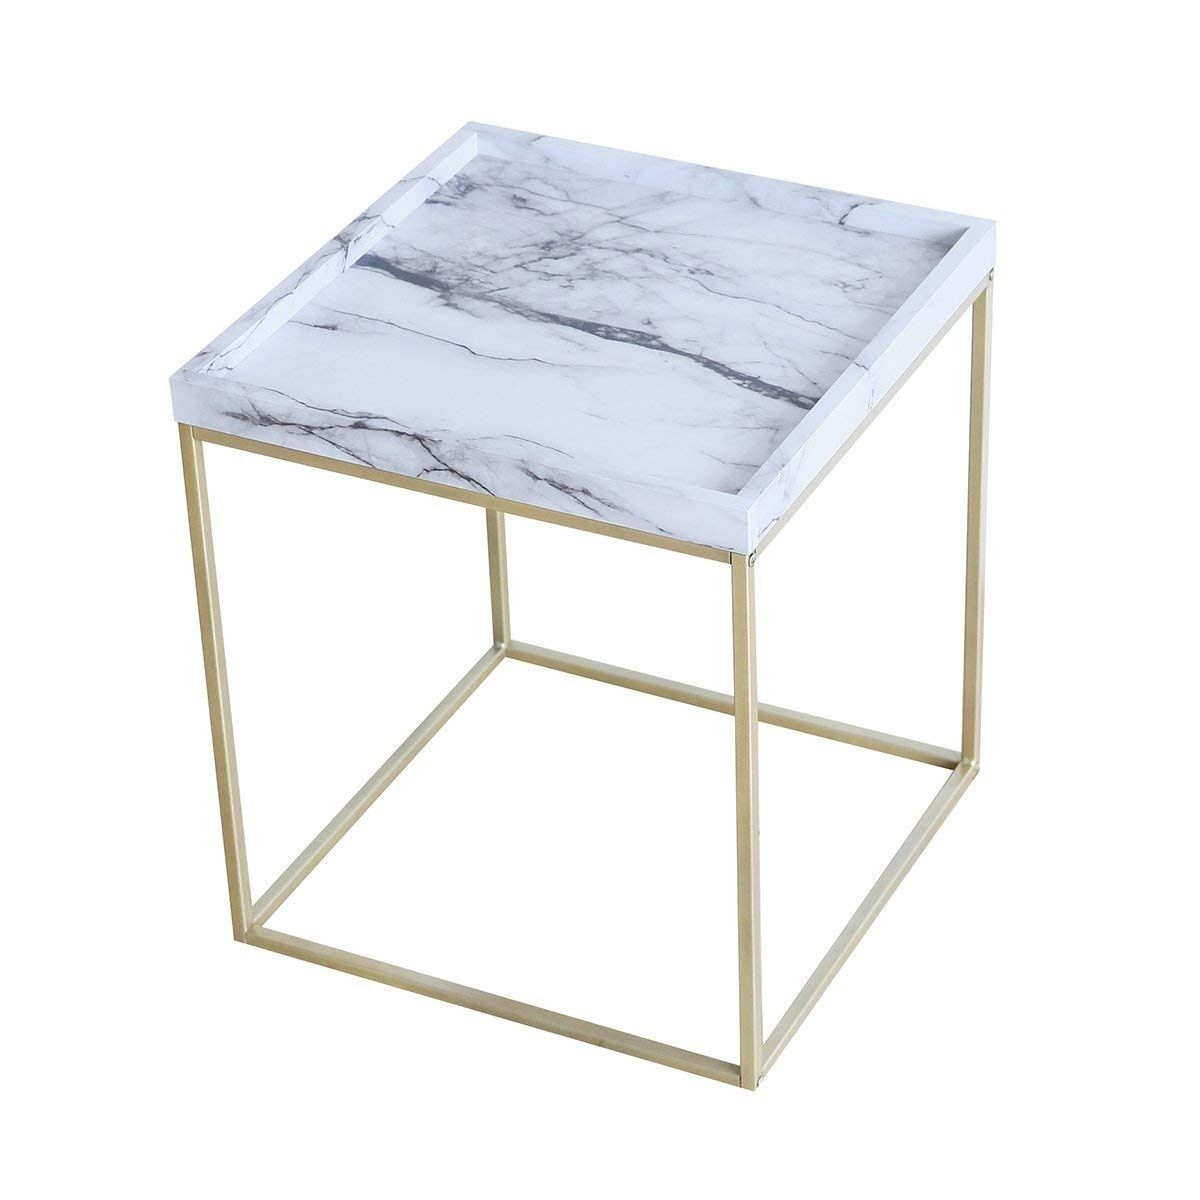 tilly lin modern accent faux marble top end table gold legs small side for living room black metal frame carrara kitchen dining drummer throne chair target with drawer corner